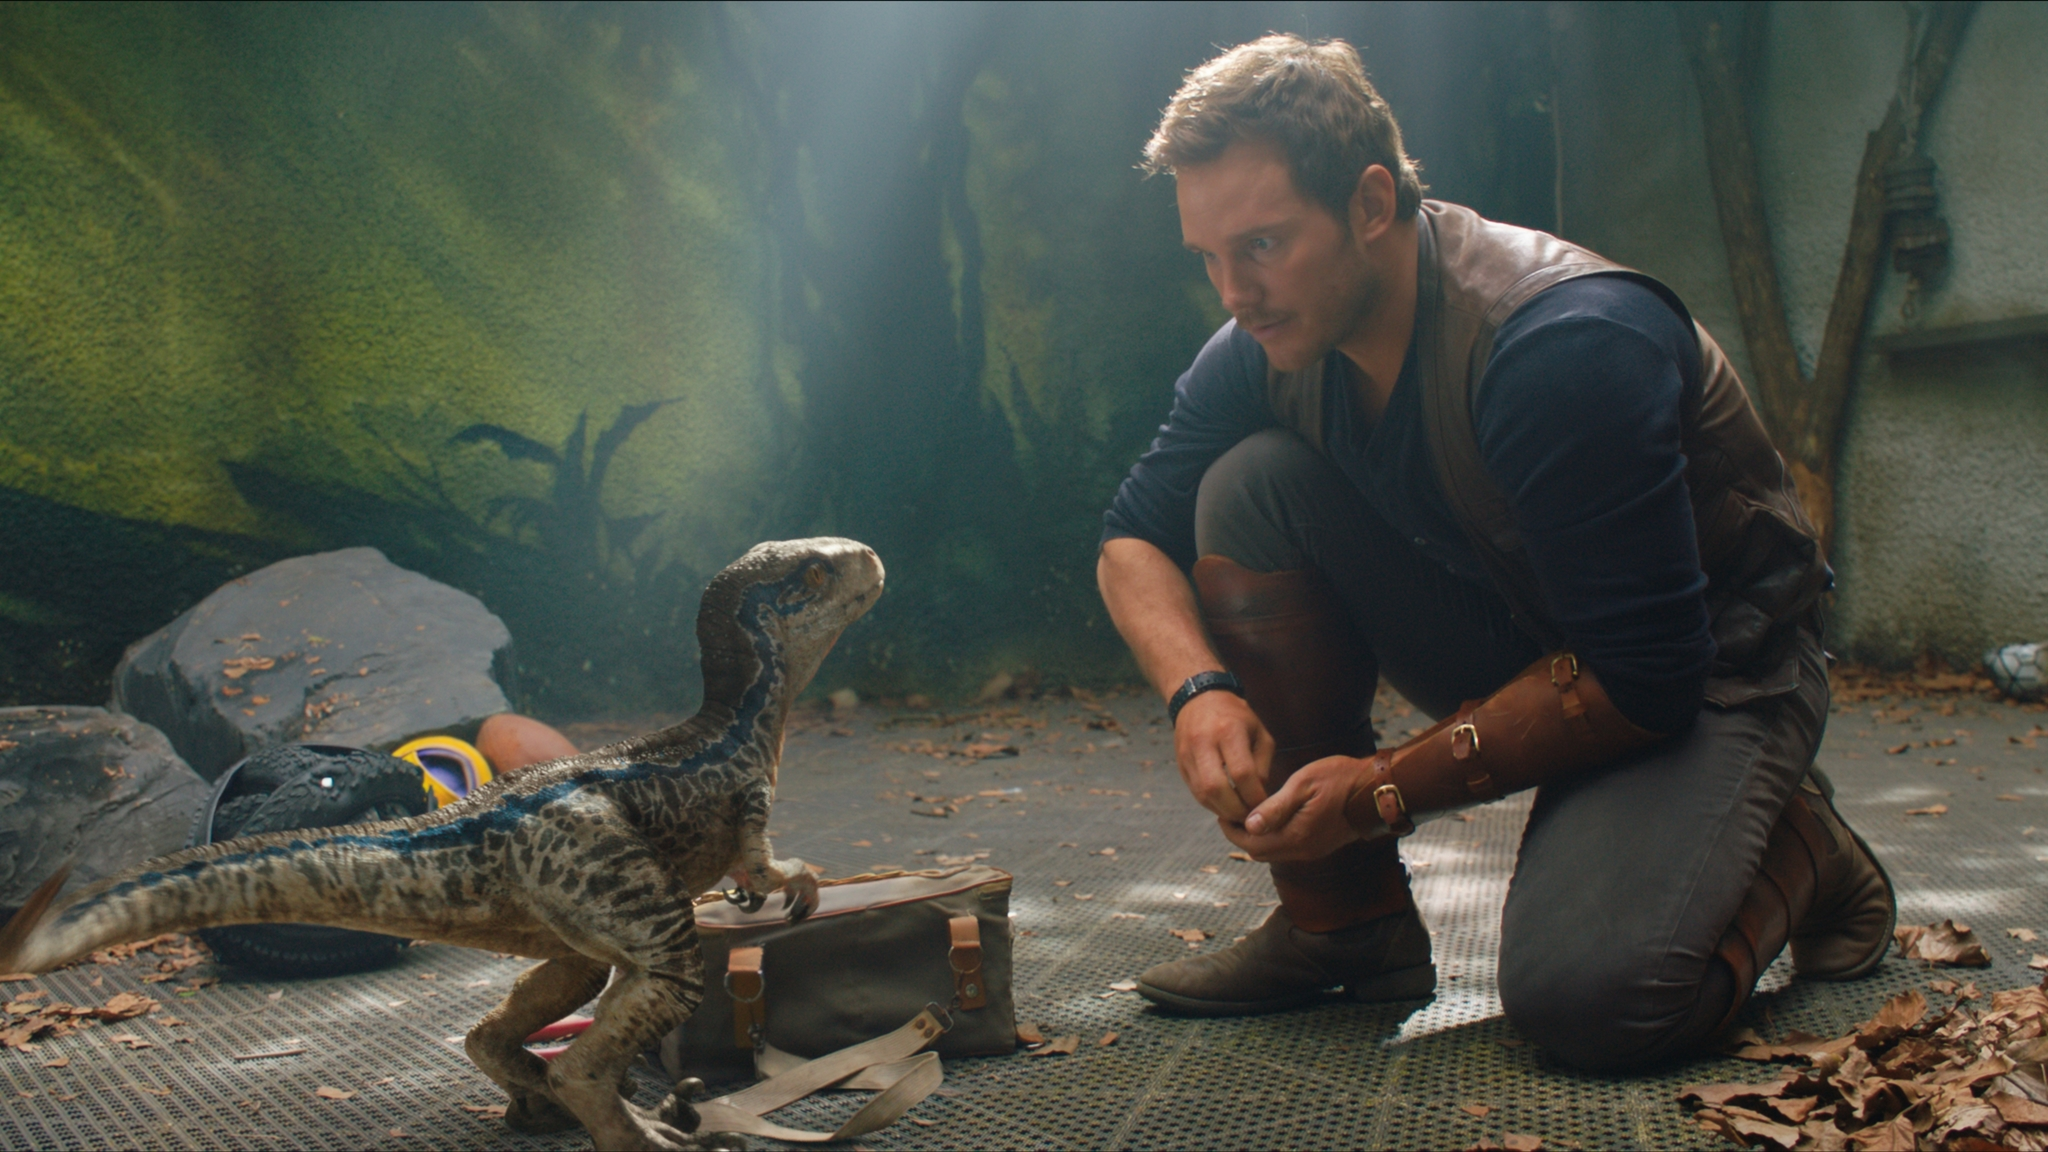 Chris Pratt in Jurassic World: Fallen Kingdom (2018)